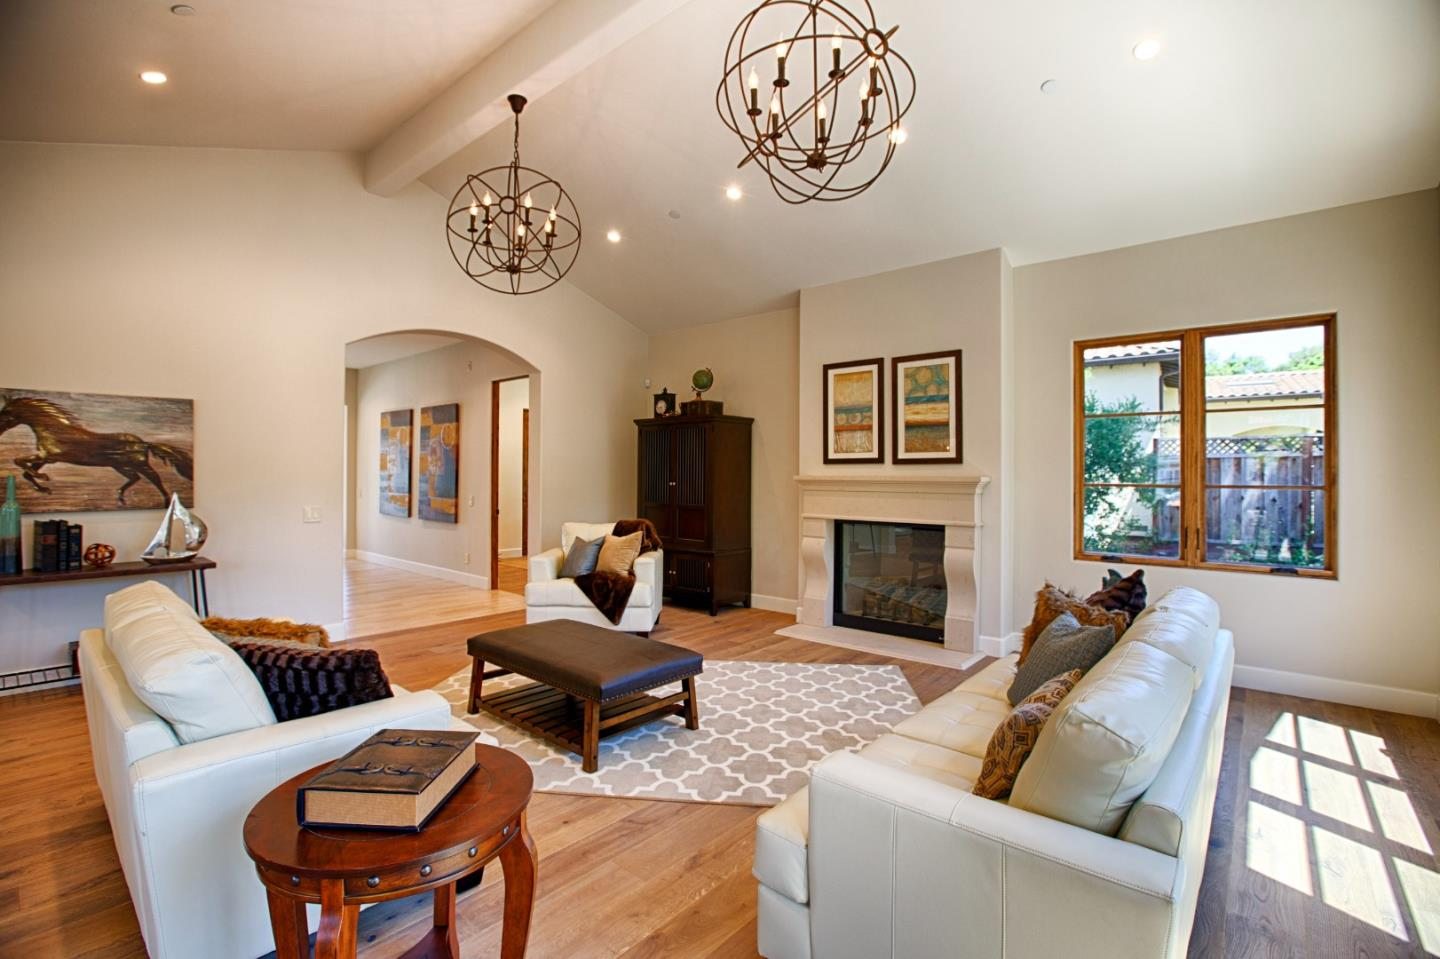 Additional photo for property listing at 16684 Marchmont Dr  LOS GATOS, CALIFORNIA 95032